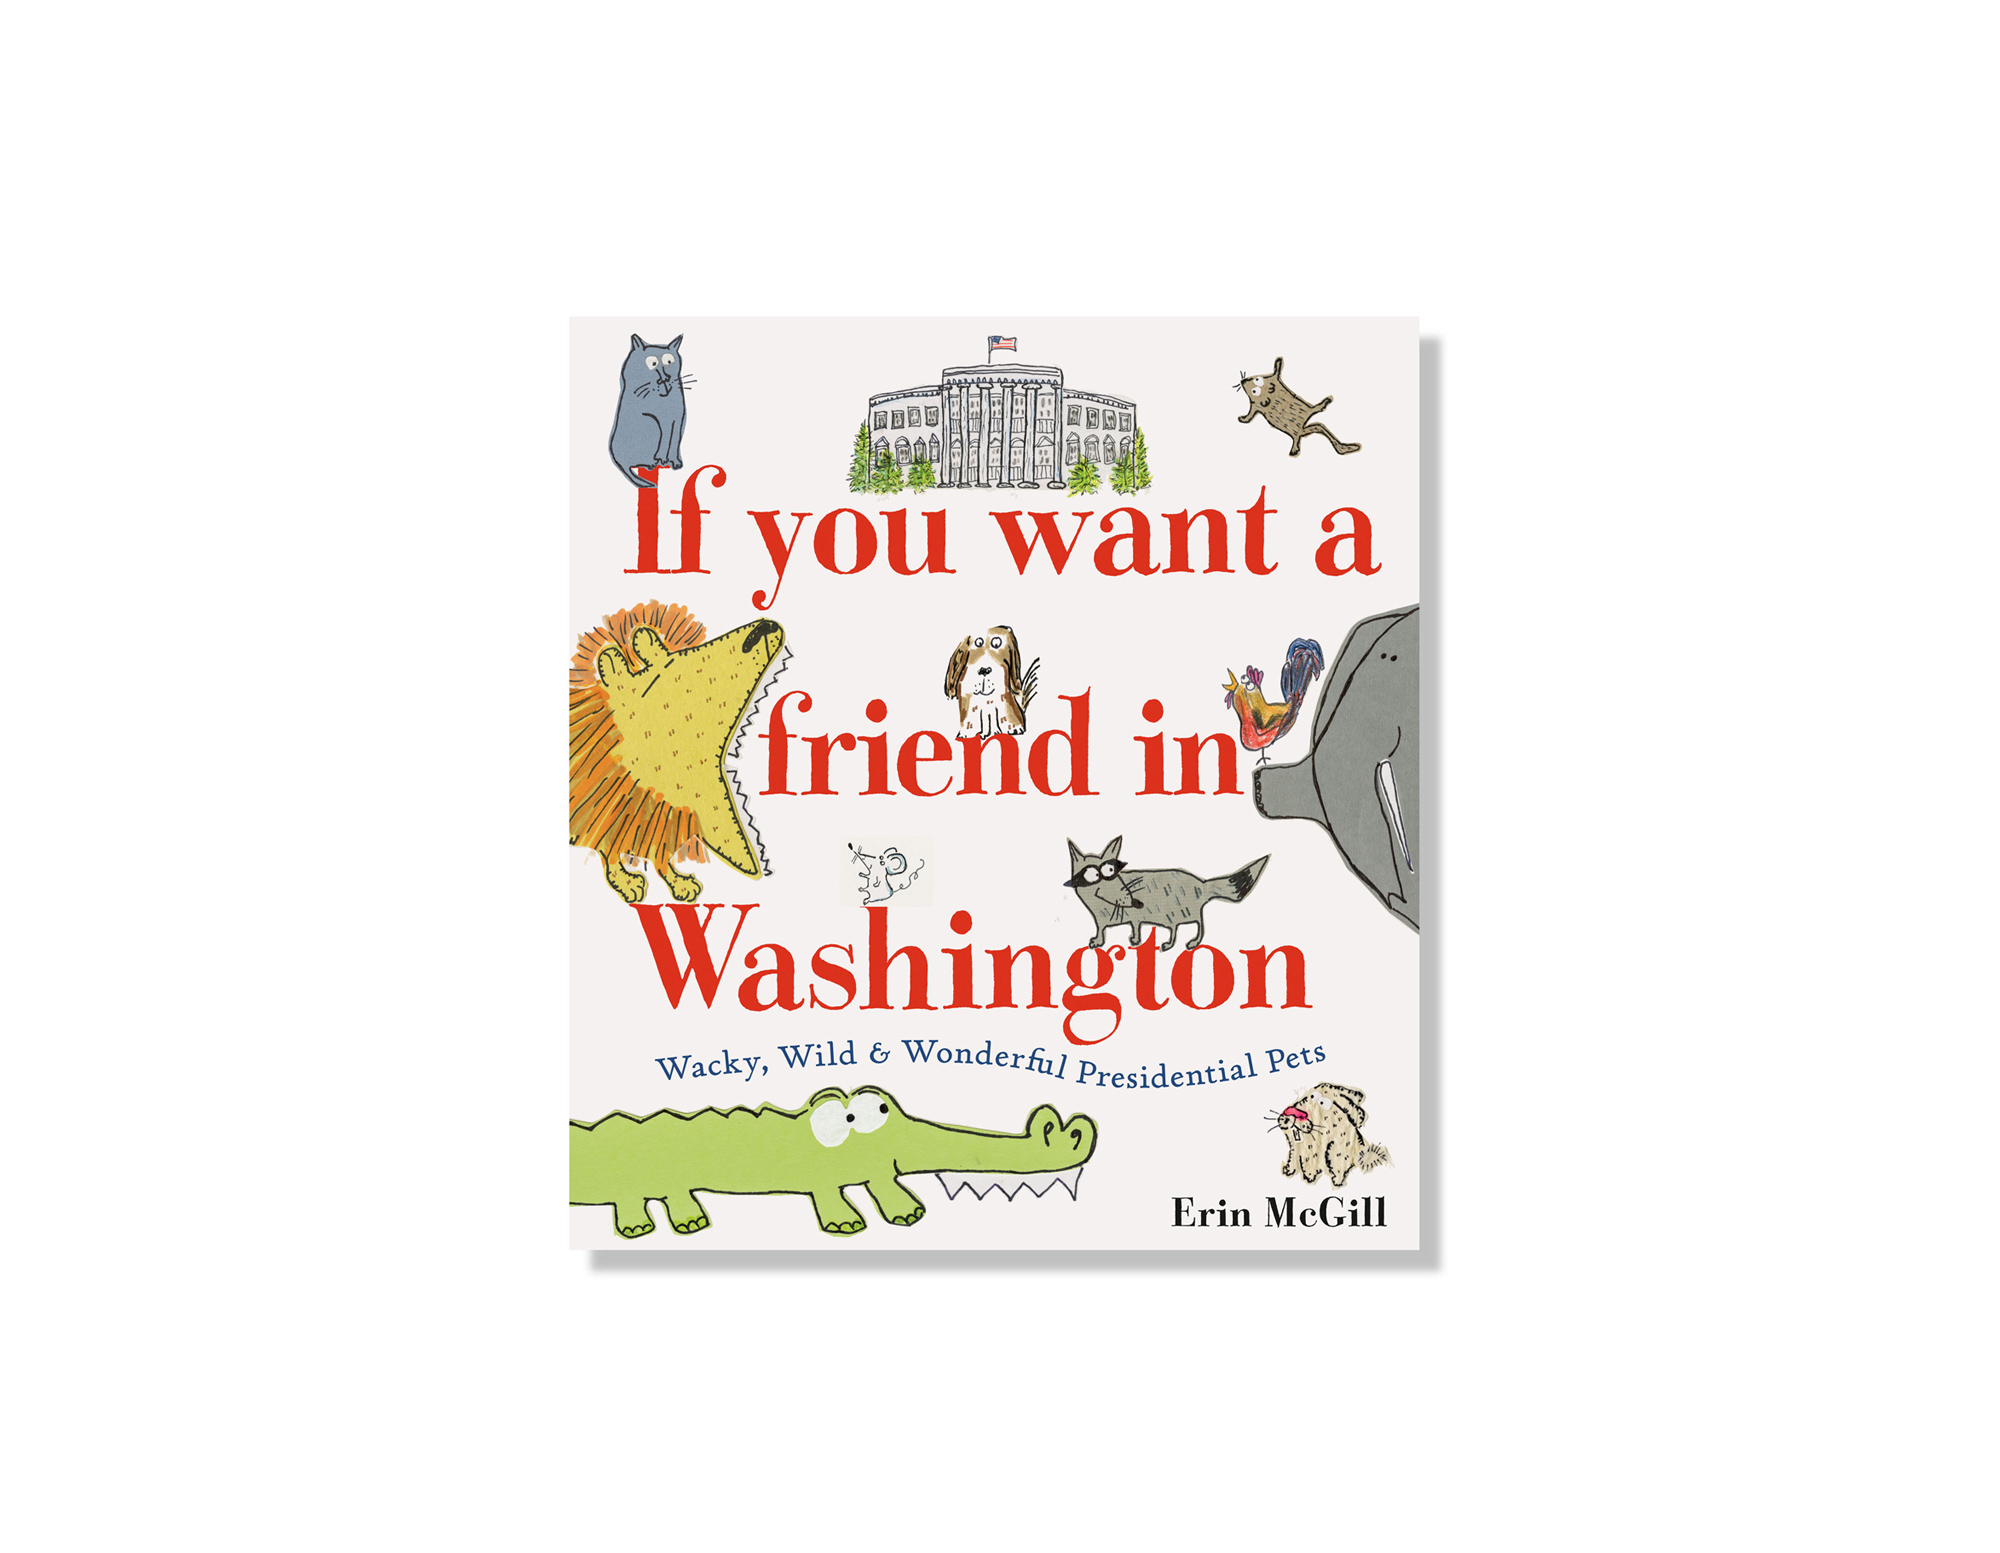 If You Want a Friend in Washington: Wacky, Wild & Wonderful Presidential Pets